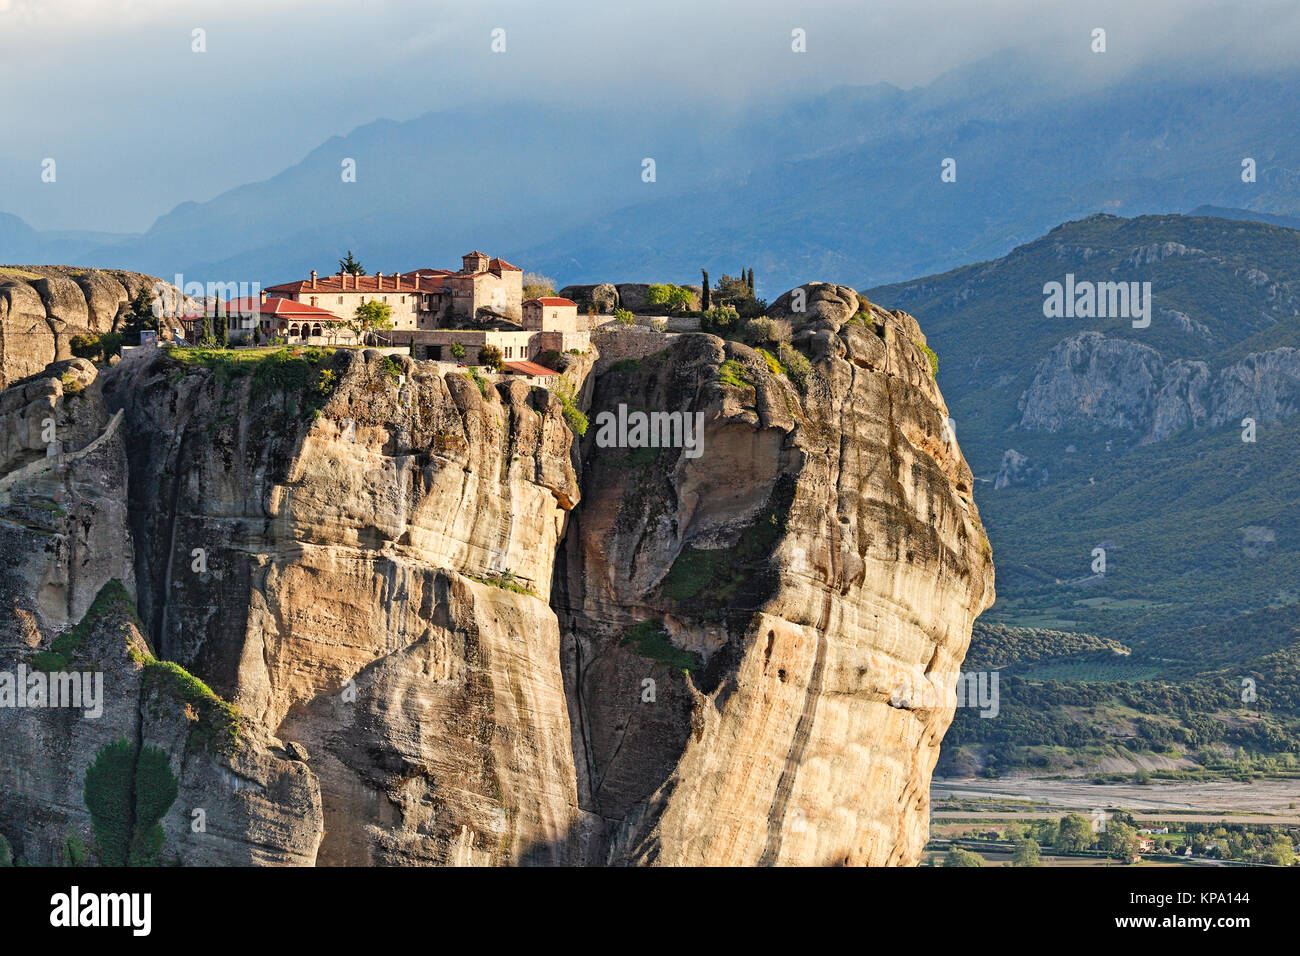 Holy Trinity Monastery or Agia Triada Monastery in the Meteora Monastery complex in Greece - Stock Image